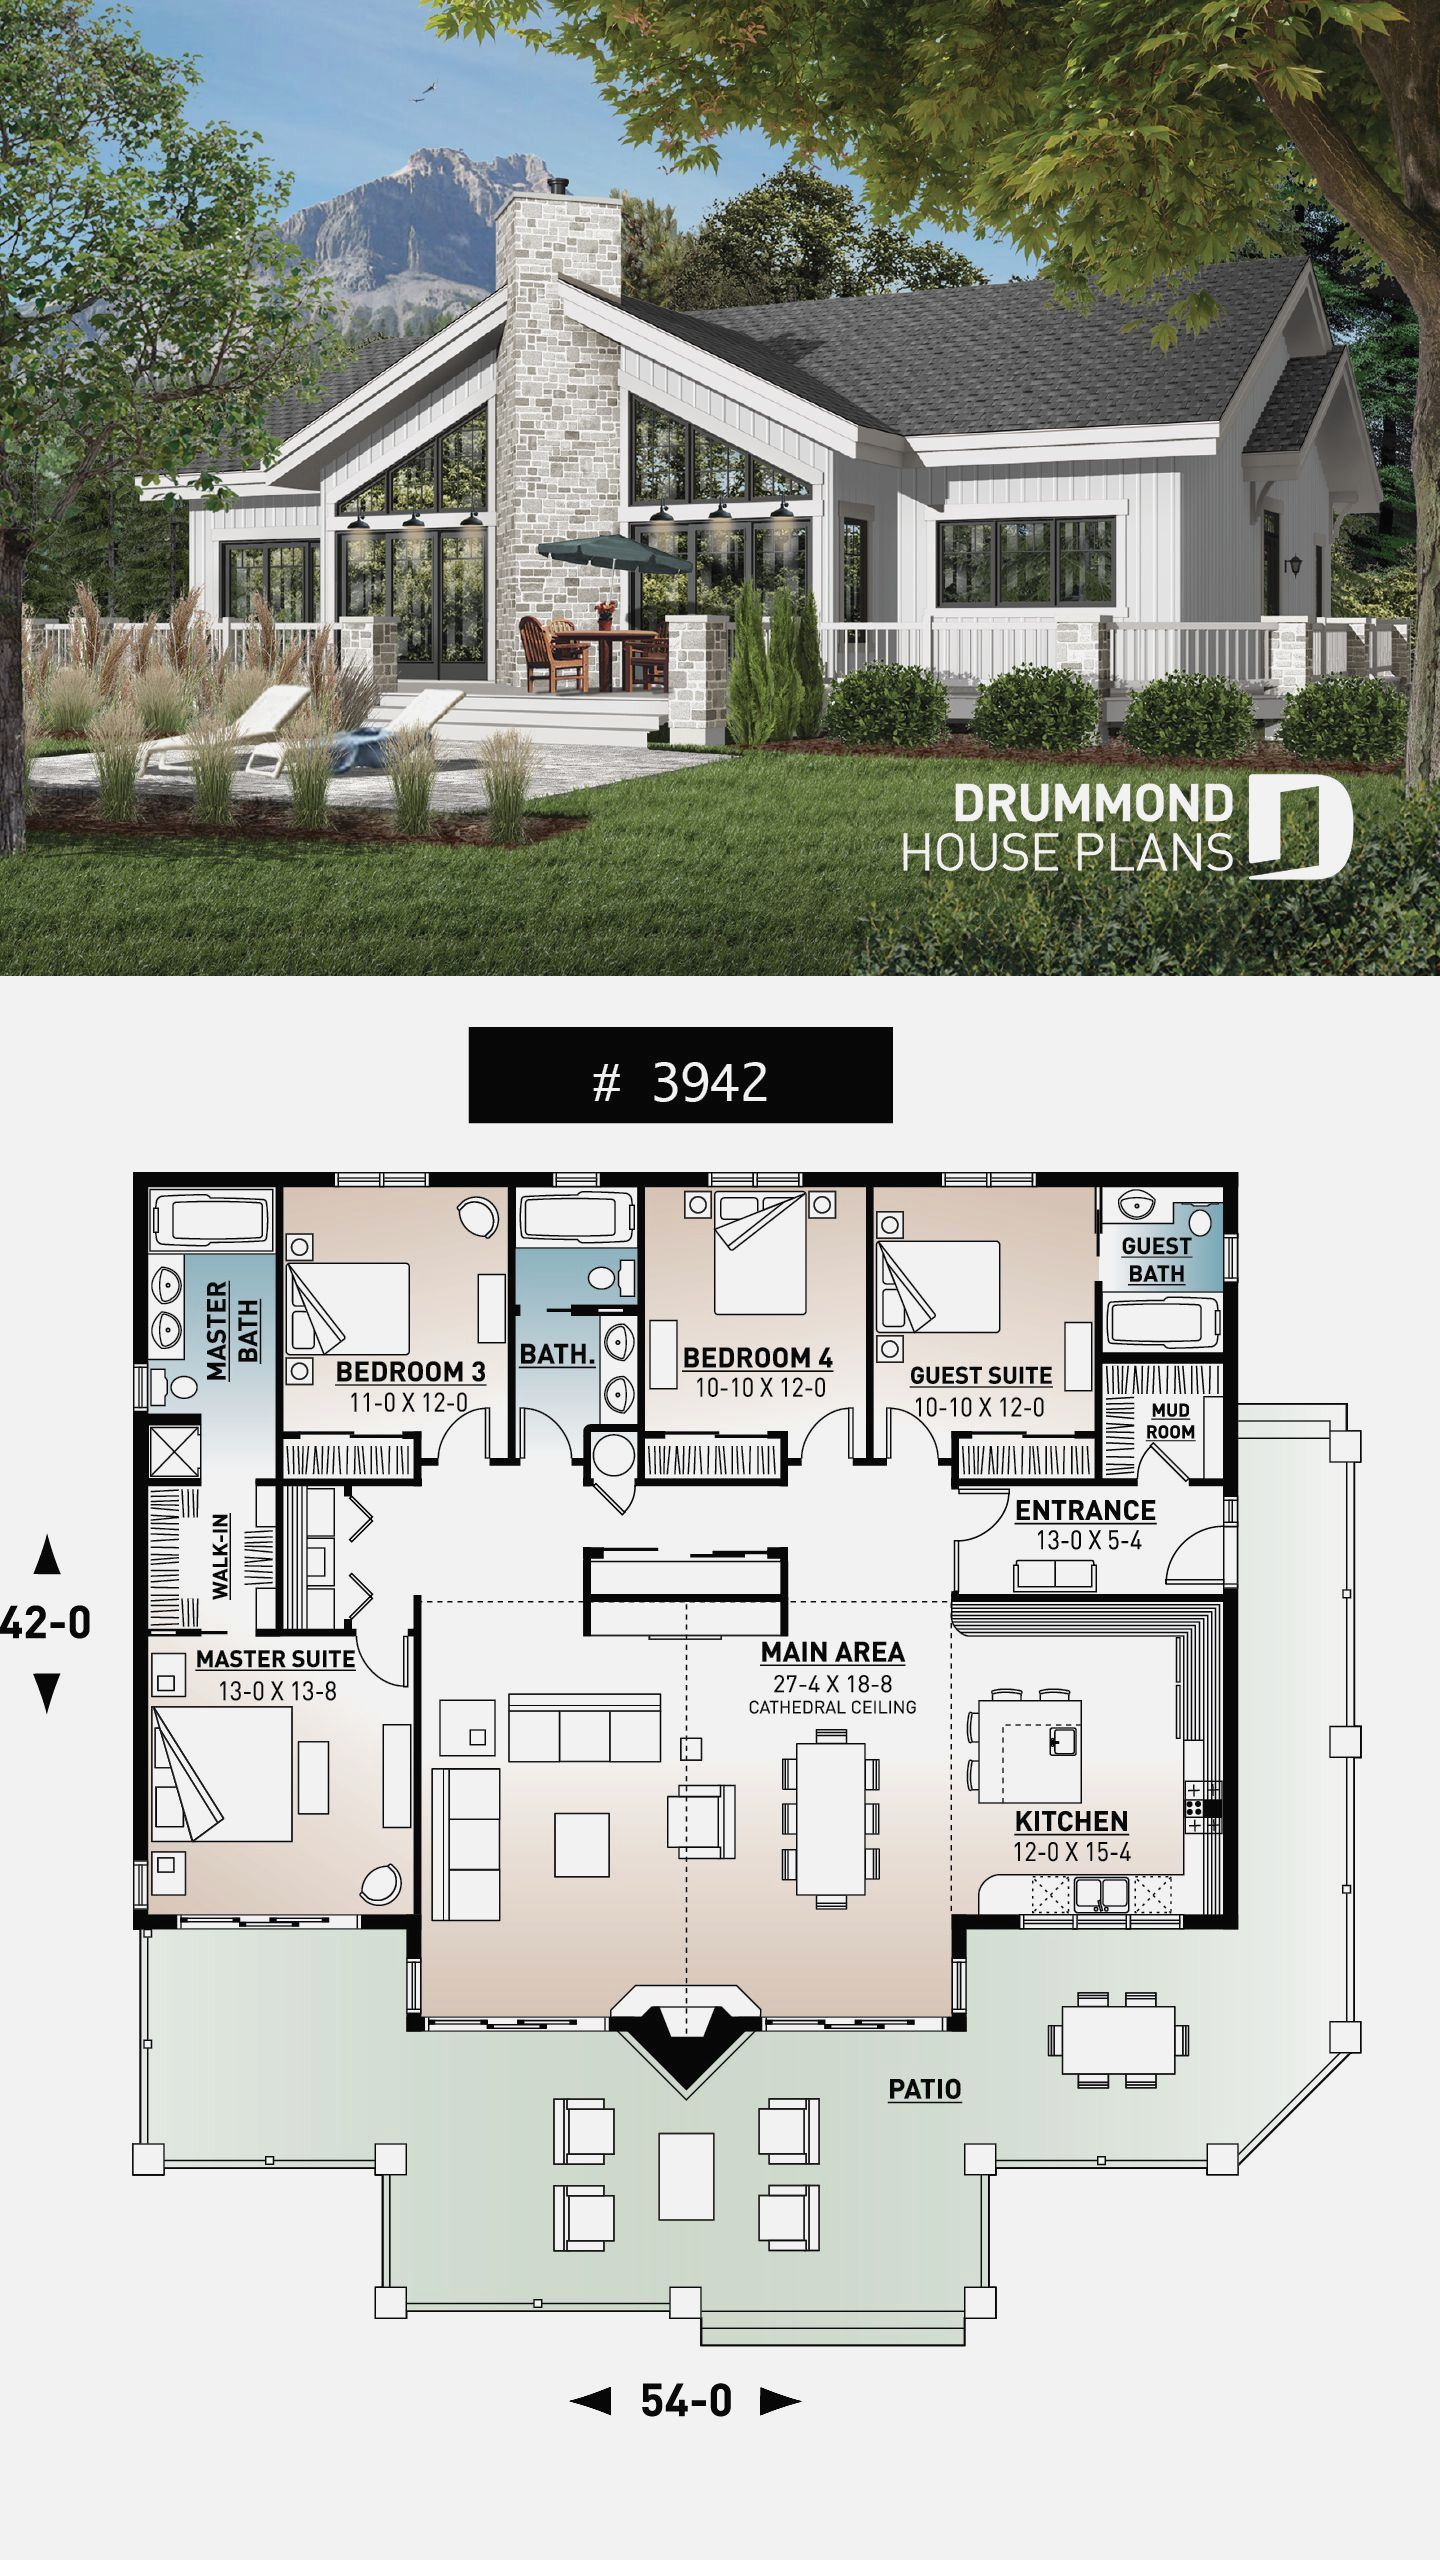 Sims 4 Floor Plan Floor Plans 2020 Sims House Plans House Plans Farmhouse Lake House Plans